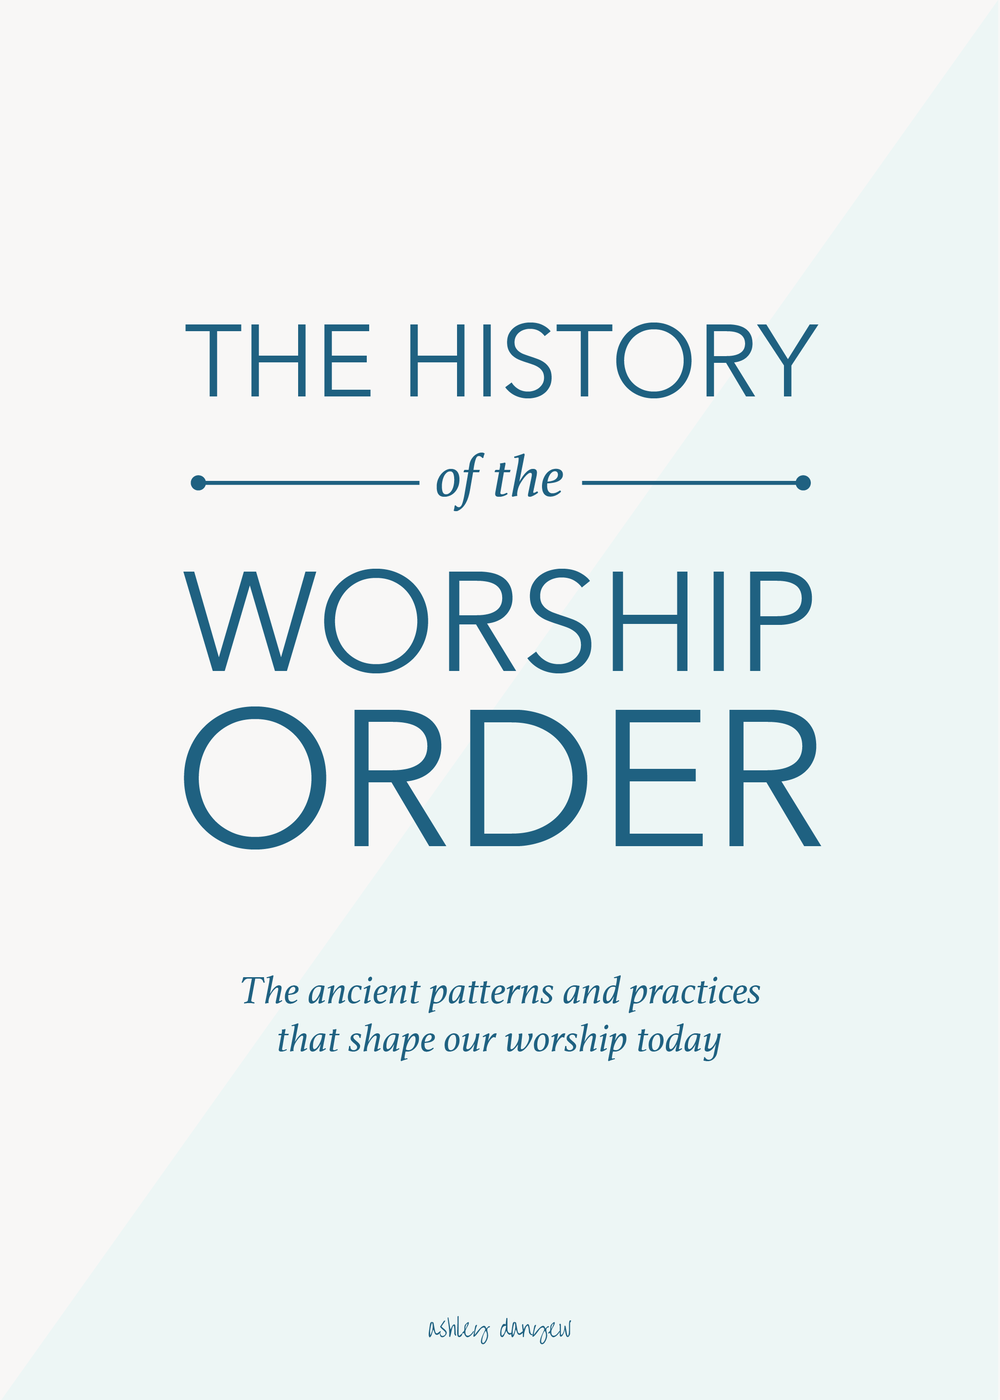 Copy of The History of the Worship Order